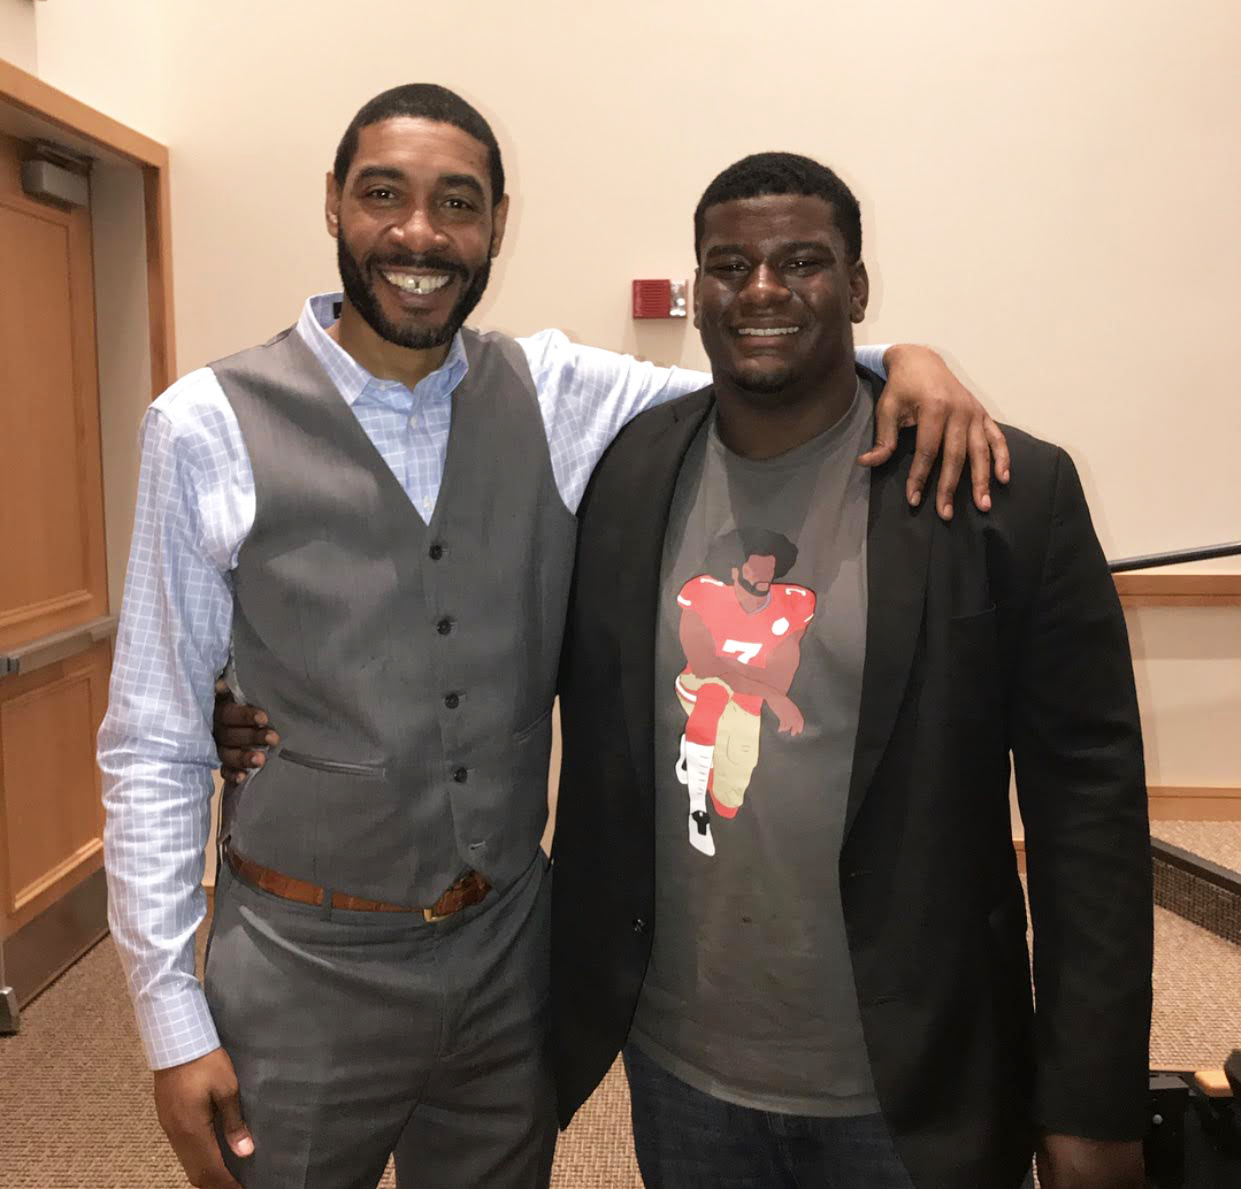 College junior, football player, and sportswriter Jason Hewitt believes he can offer a unique perspective as a journalist of color. Last spring he had the opportunity to interview Jimmy King, a member of the University of Michigan's Fab Five.